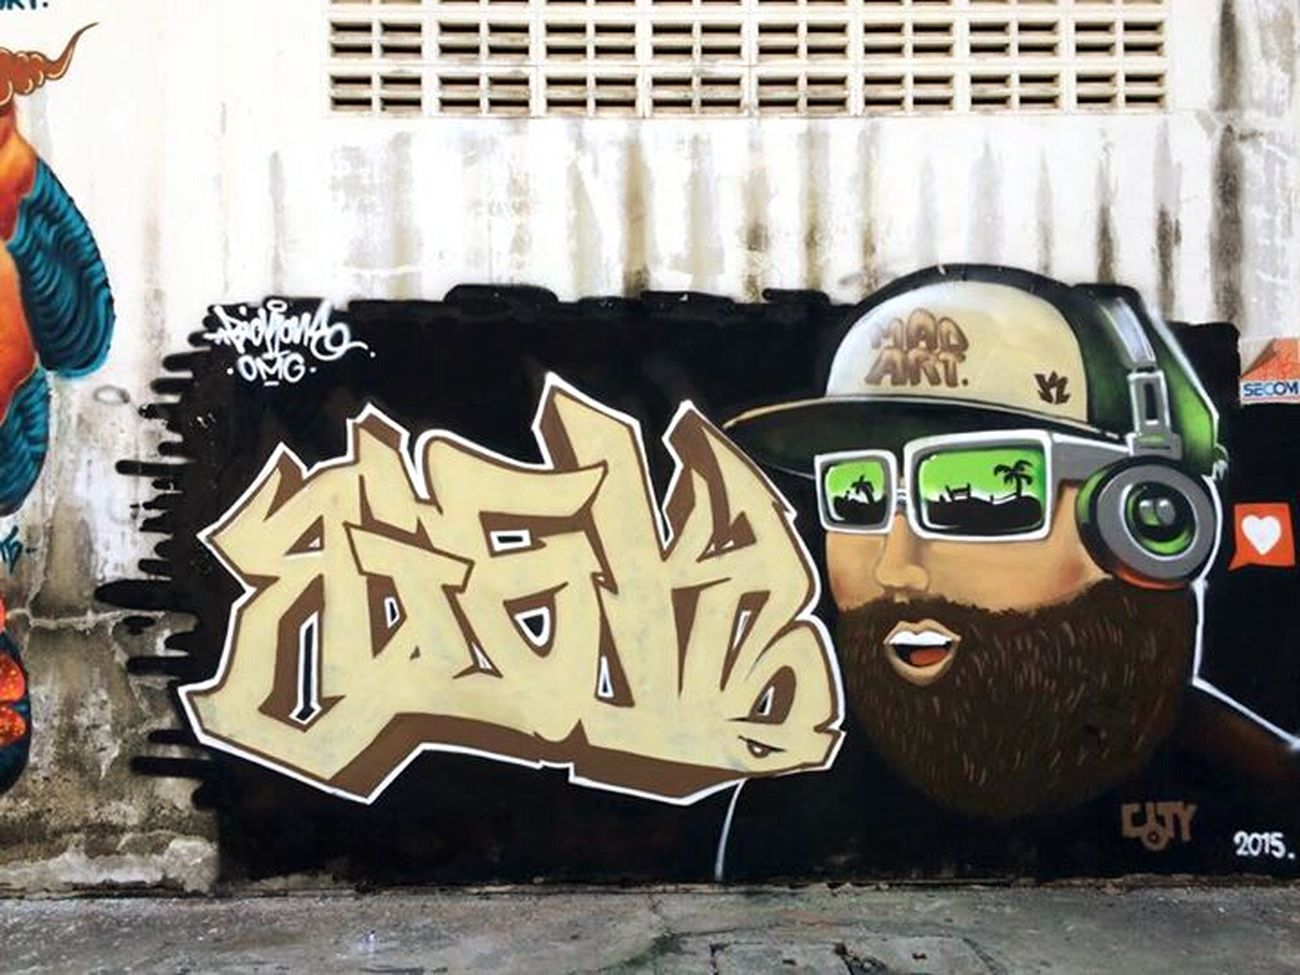 Hi! Bigk One Graffiti Art Enjoying Life Fatboy 555+